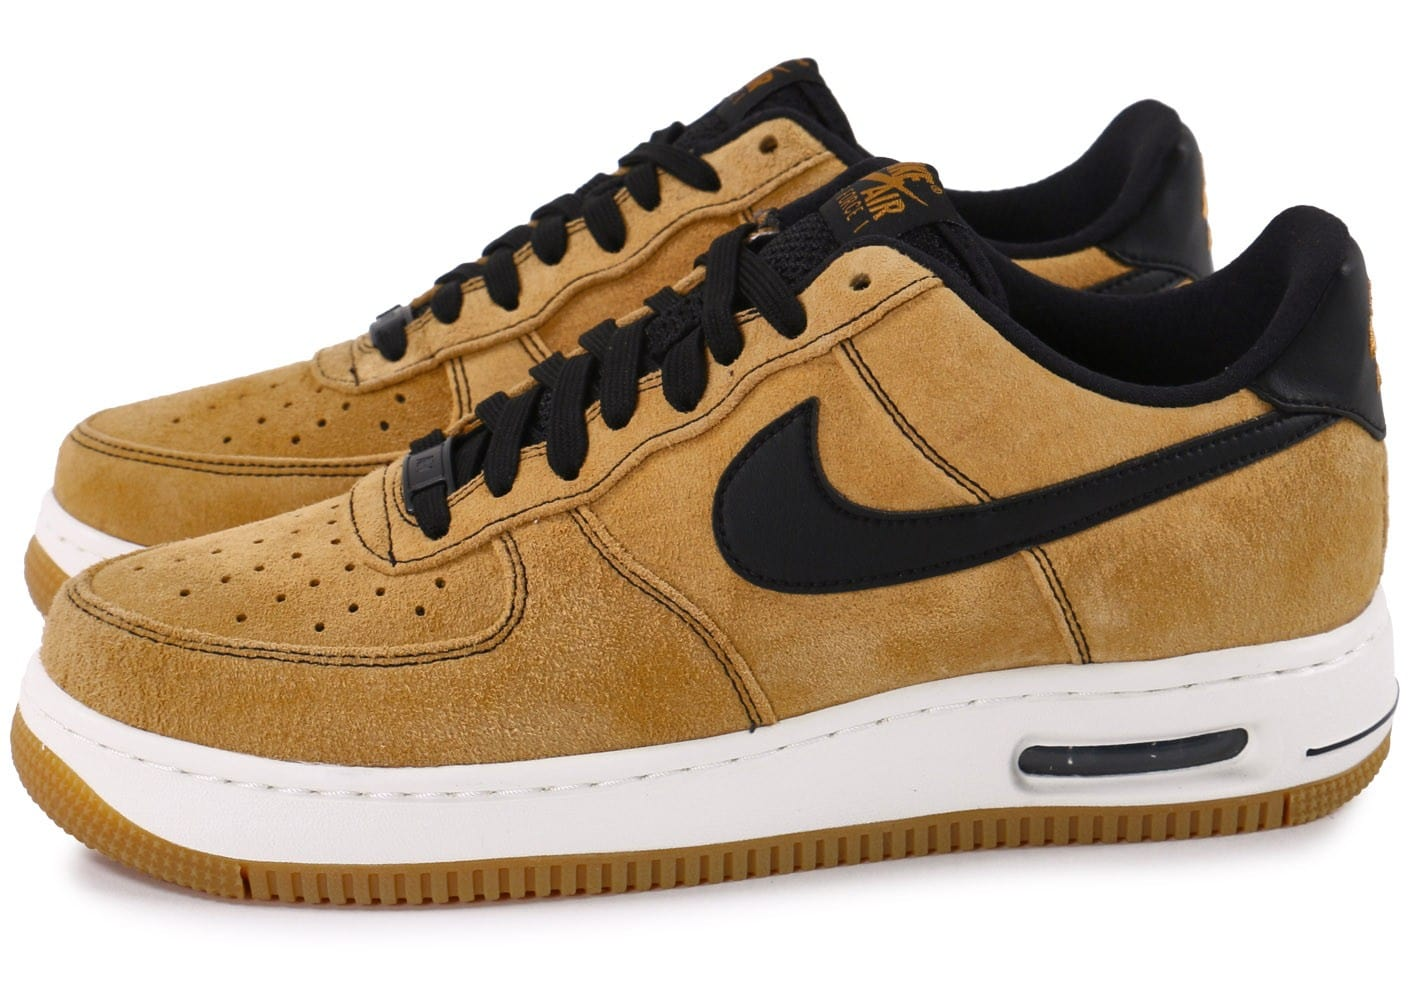 nike air force 1 elite low wheat chaussures homme chausport. Black Bedroom Furniture Sets. Home Design Ideas